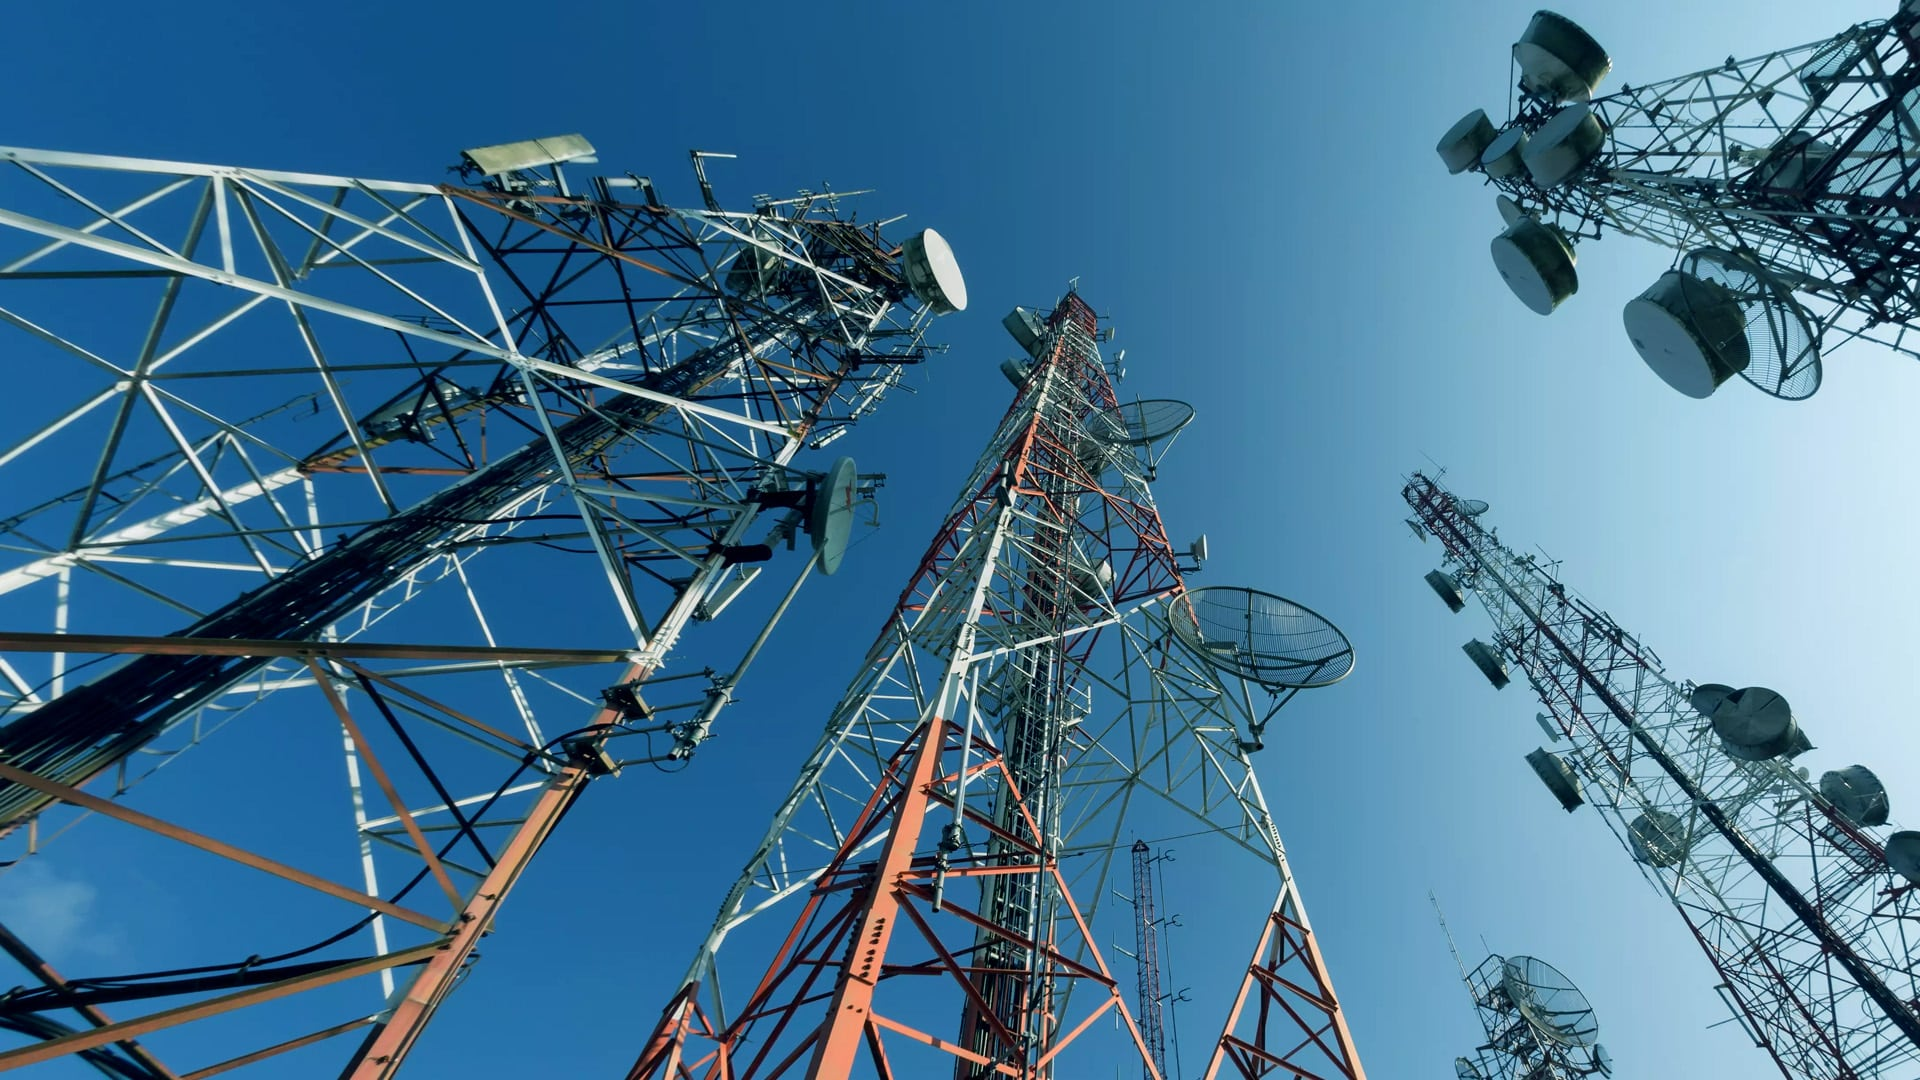 Need to increase R&D investment, leverage India's IT prowess for Aatmanirbhar Bharat: Trai